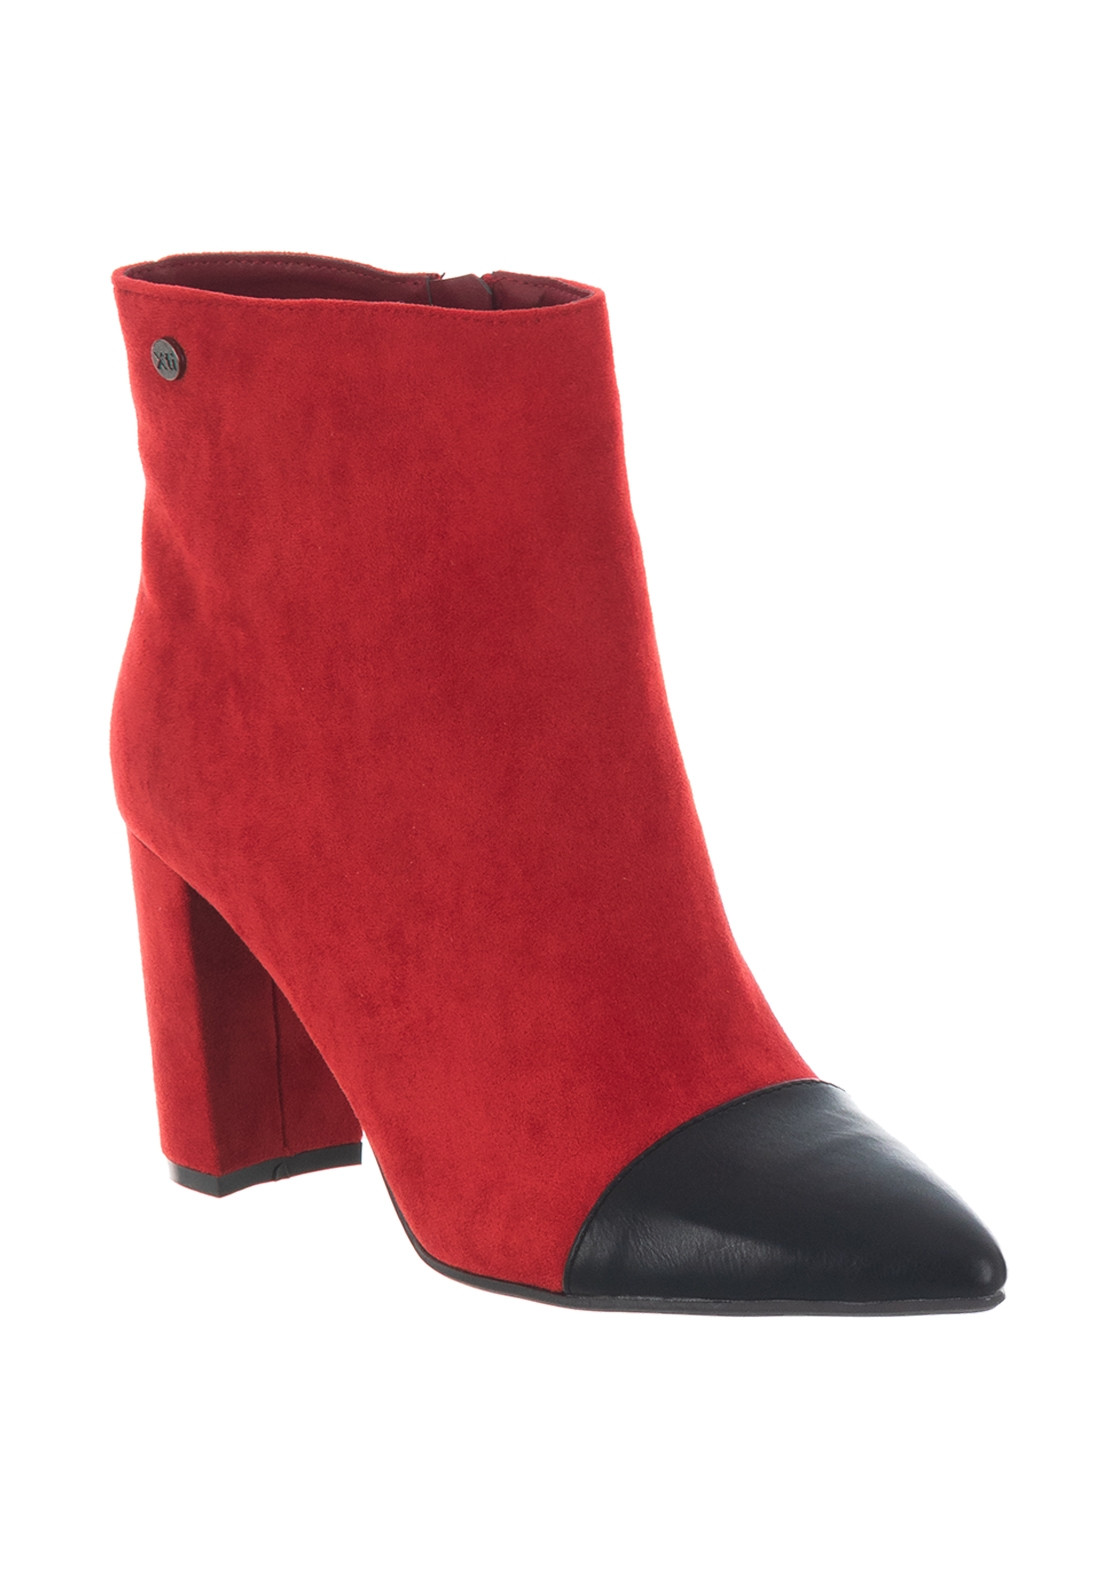 fba328e72c9 Xti Contrast Toe Faux Suede Ankle Boots, Red